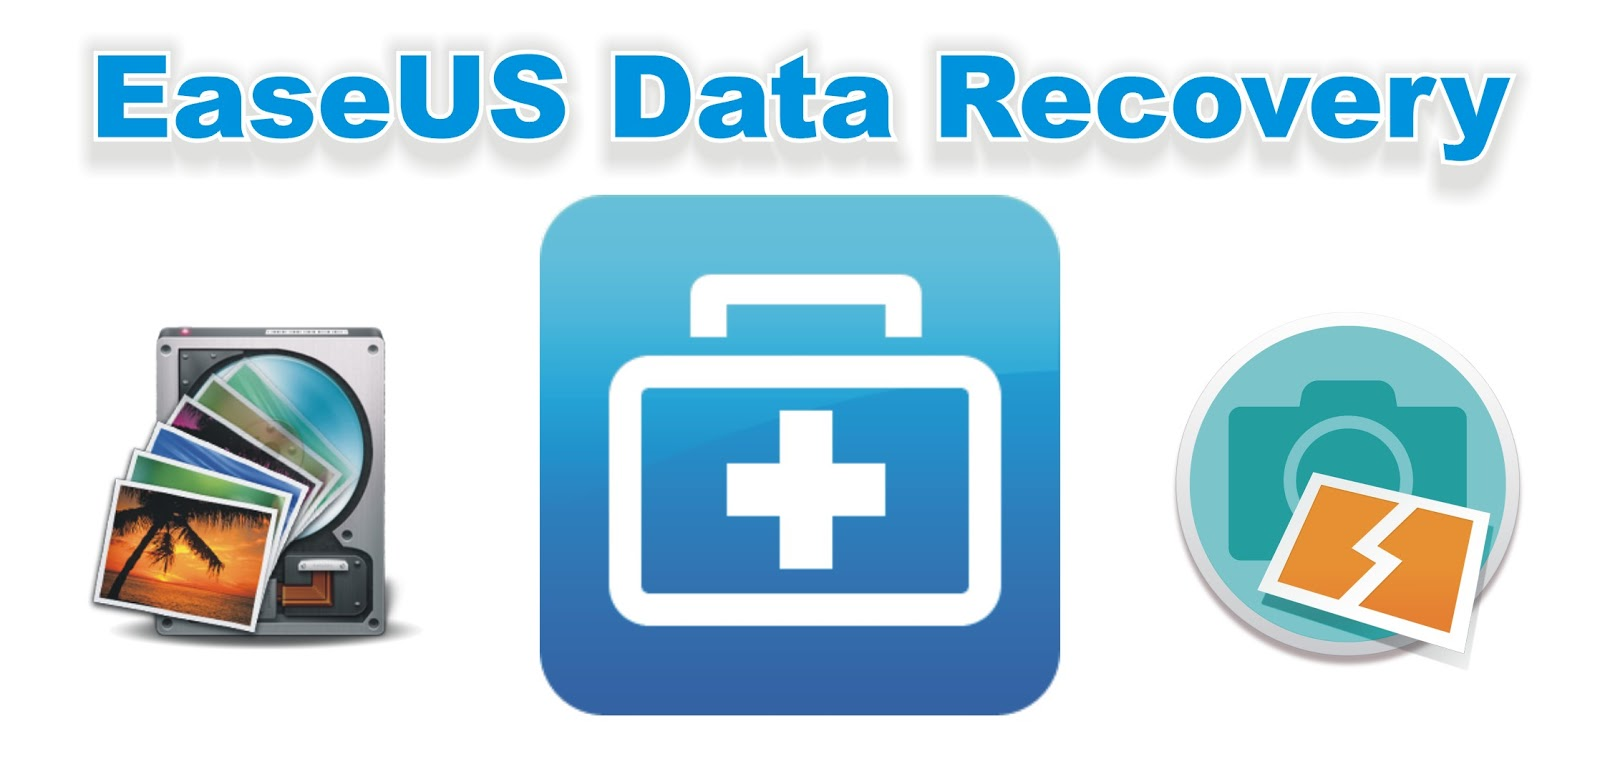 data recovery Recover my files data recovery software recovers deleted files emptied from the windows recycle bin, files lost due to the format or re-install of a hard drive, or files removed by a virus, trojan infection, unexpected system shutdown or software failure.